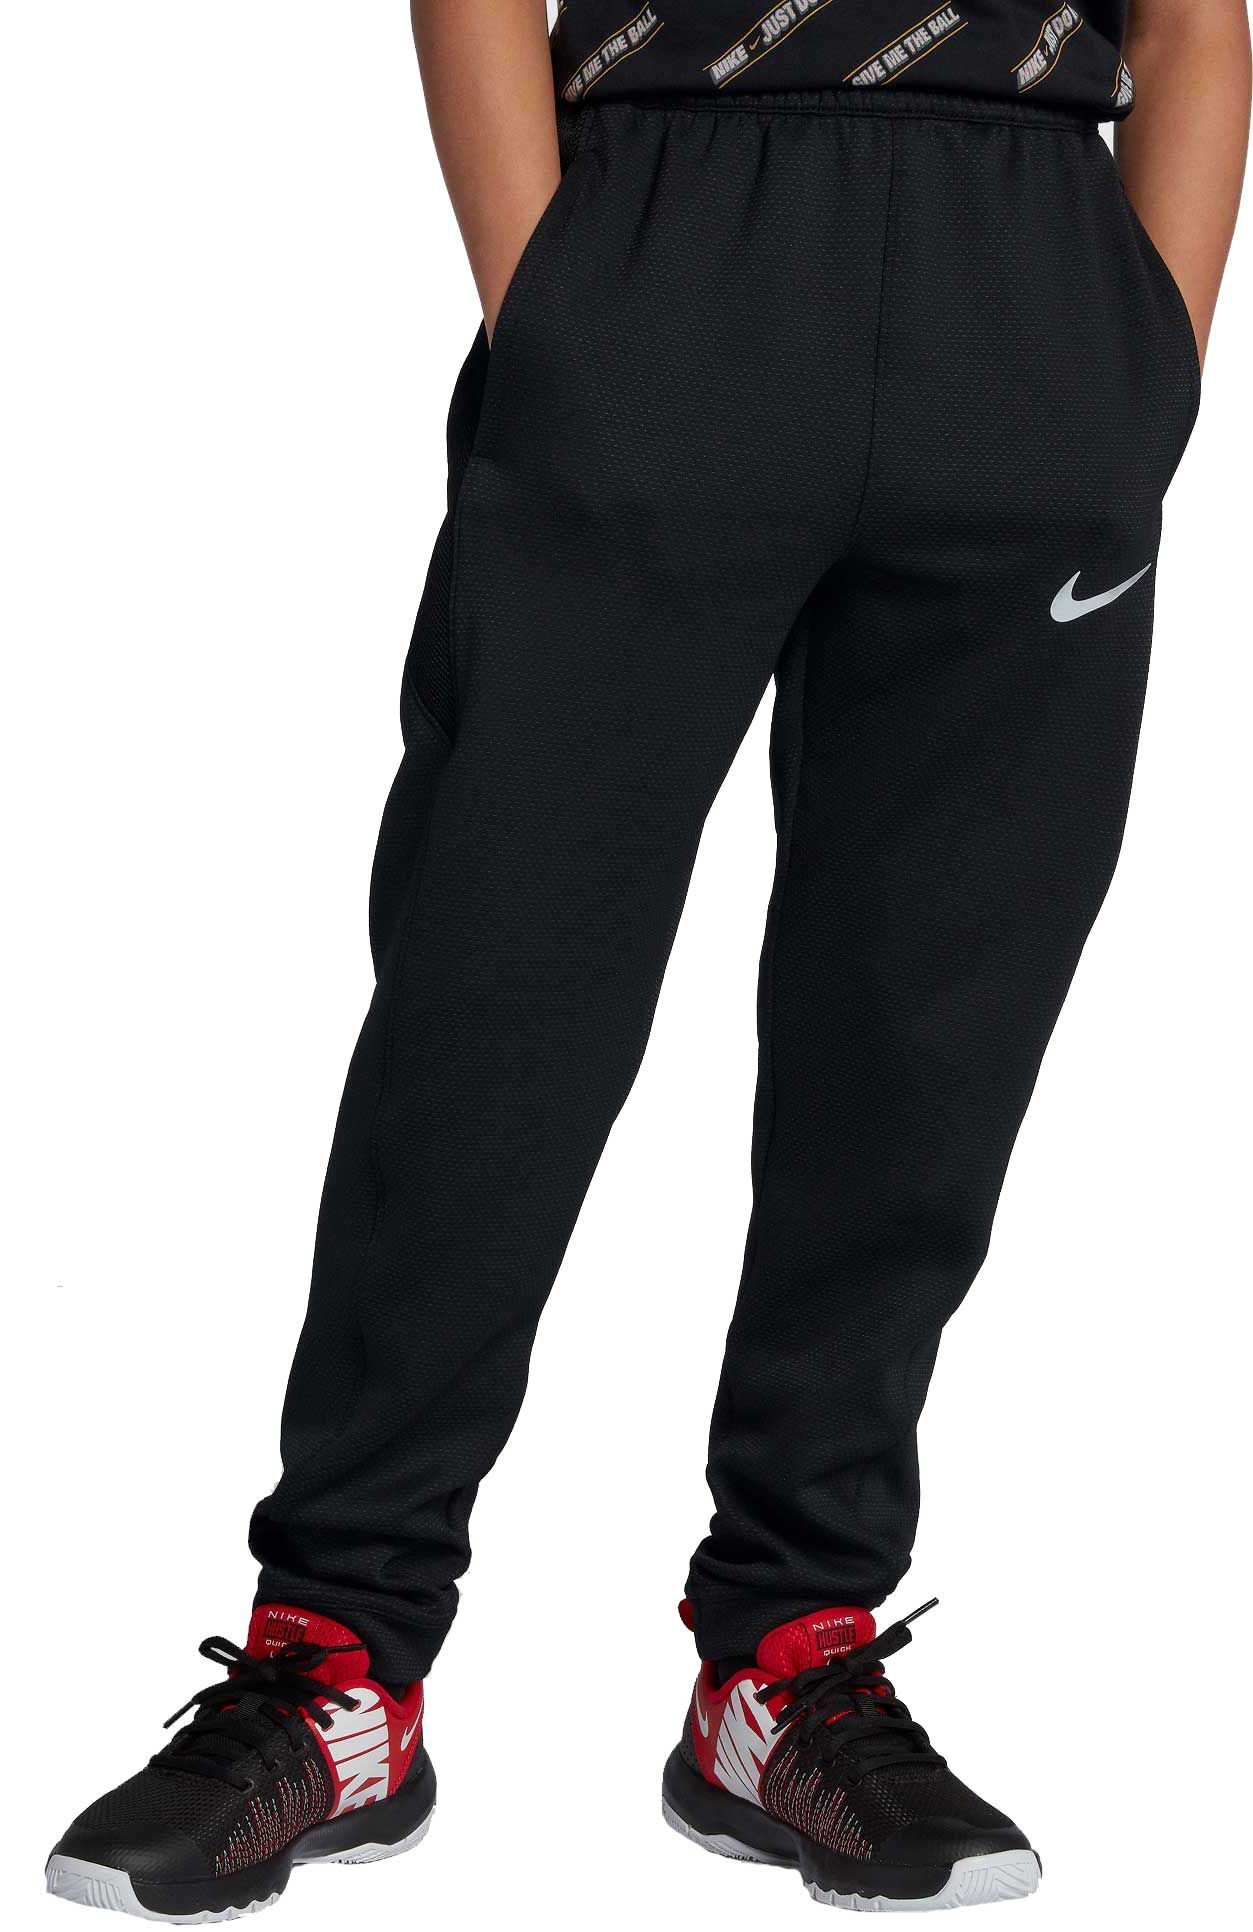 7977db9e6 Nike Boys' Therma Flex Showtime Pants | Products | Basketball pants ...